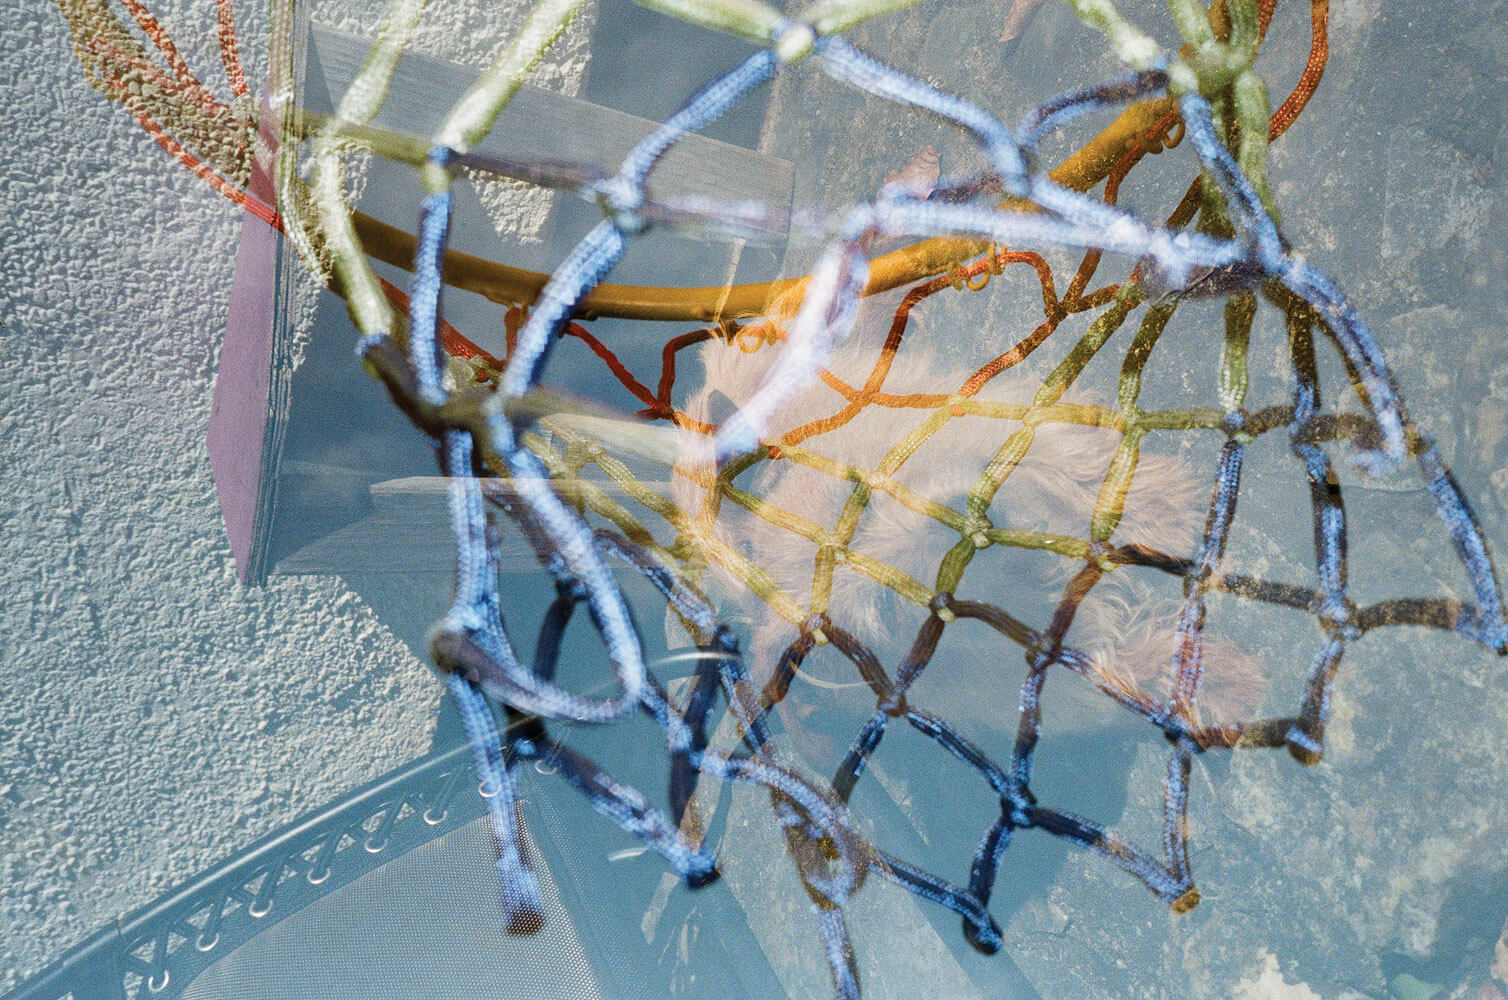 Tiana Ferguson - Fool Me Once, Fool You Twice. Double exposure of netted material and blue colours